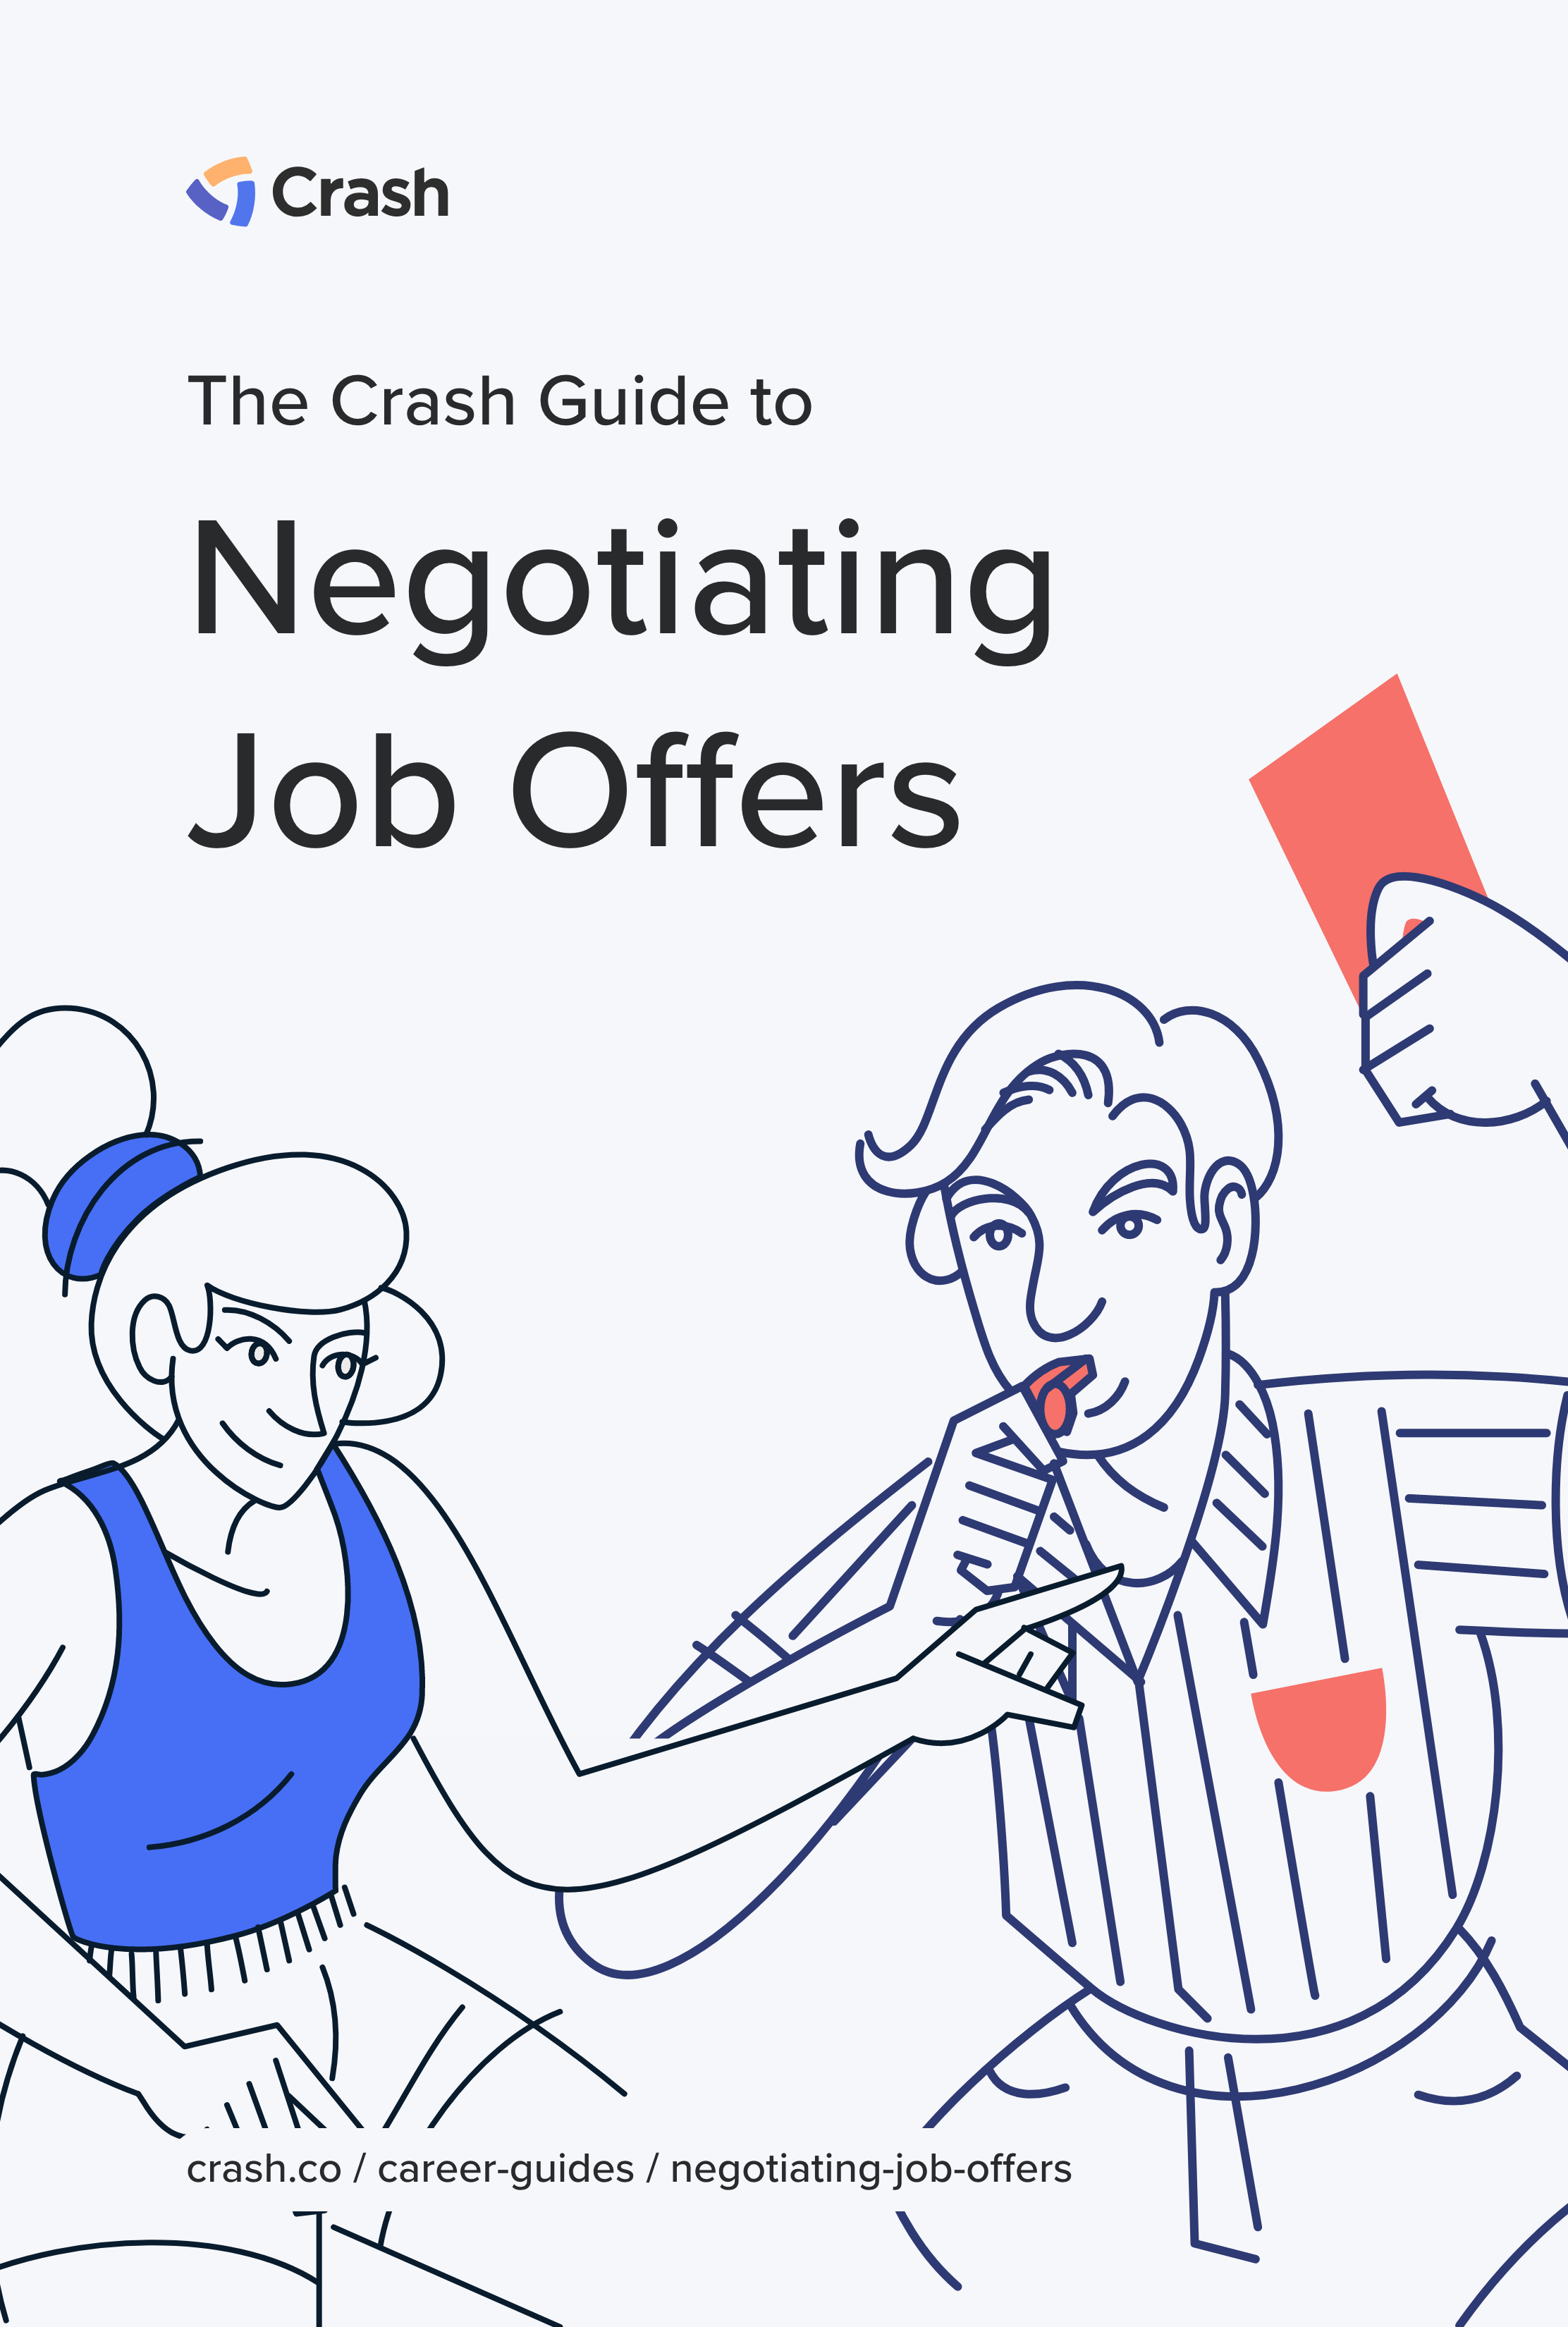 negotiating job offers crash career guide cover image